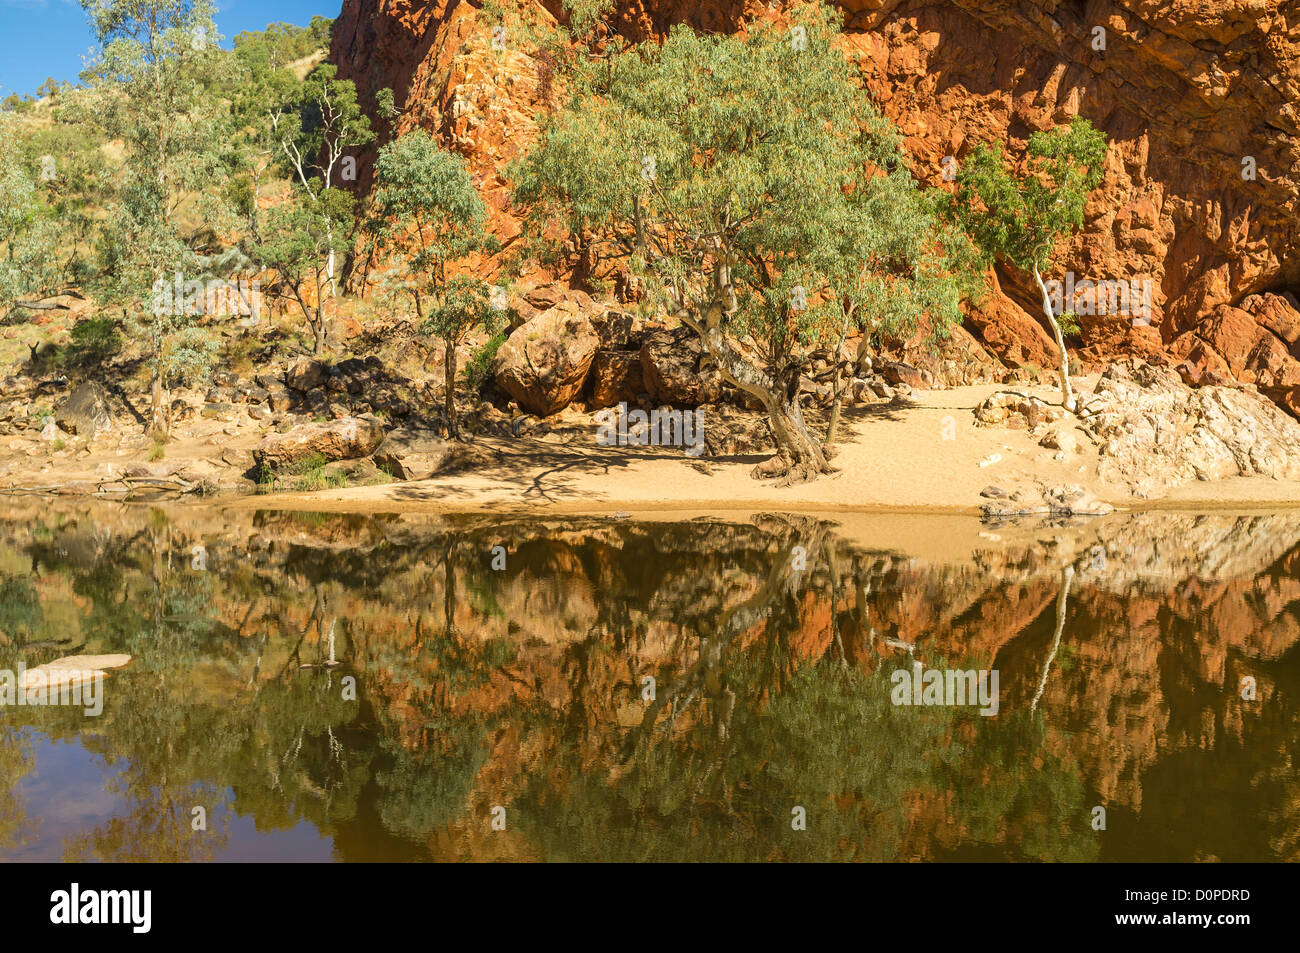 Red walls of Ormiston Gorge reflected in waterhole, West Macdonnell Ranges Ranges, Alice Springs, the Red Centre - Stock Image